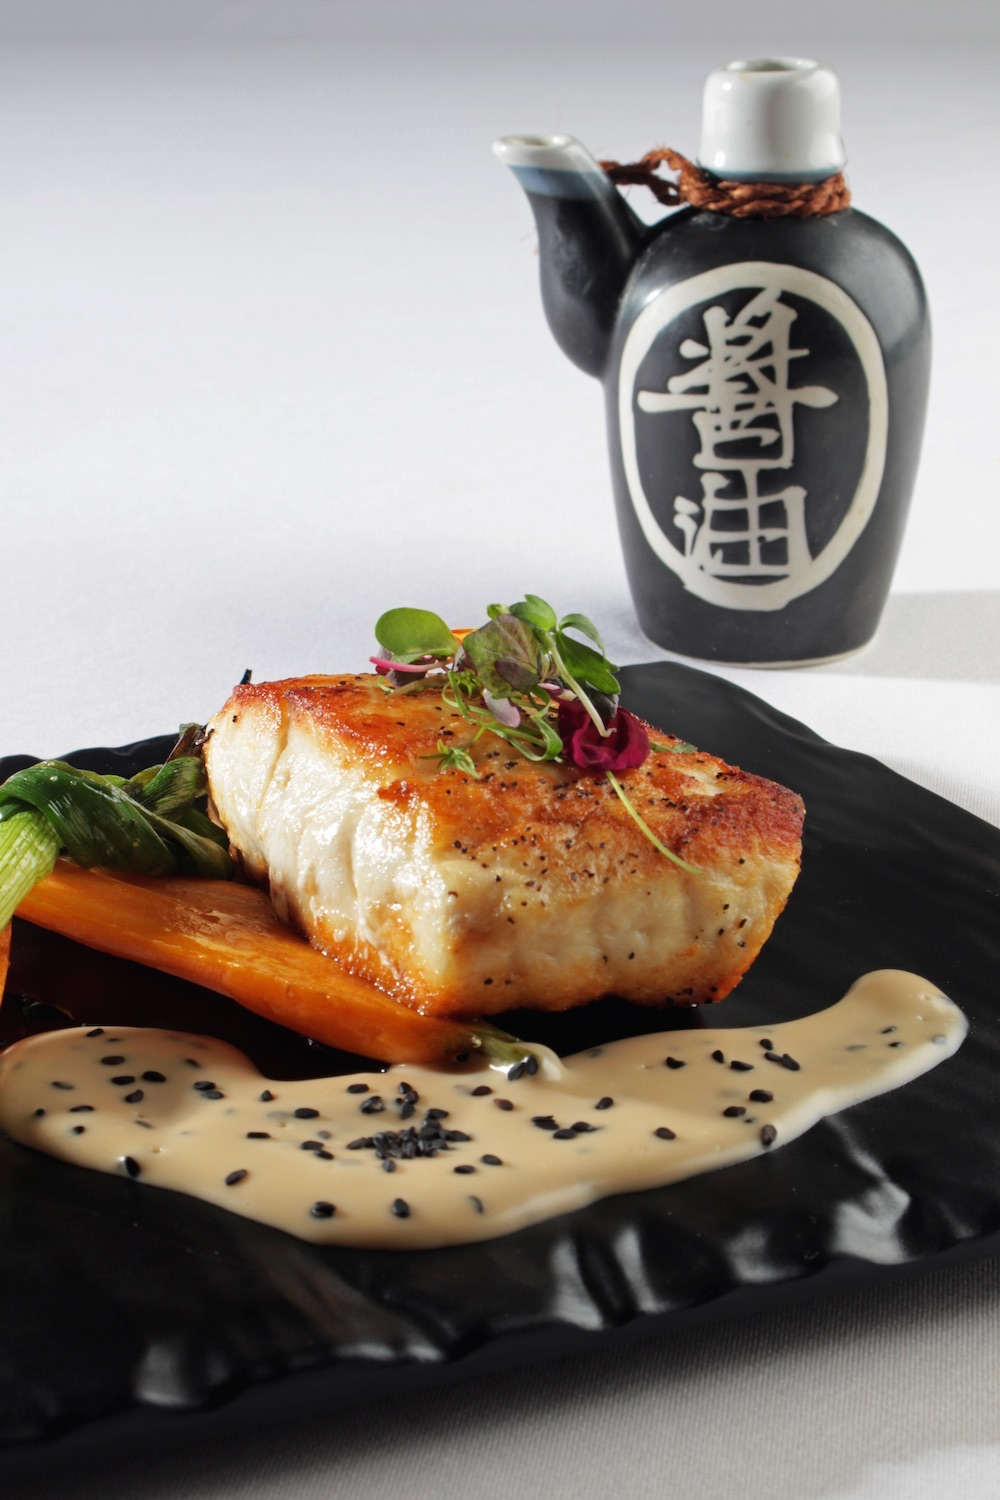 Gabriel Rivera, executive chef of SAK-I at the InterContinental San Juan Hotel, features dishes based on Thai, Japanese, and Chinese cuisine.